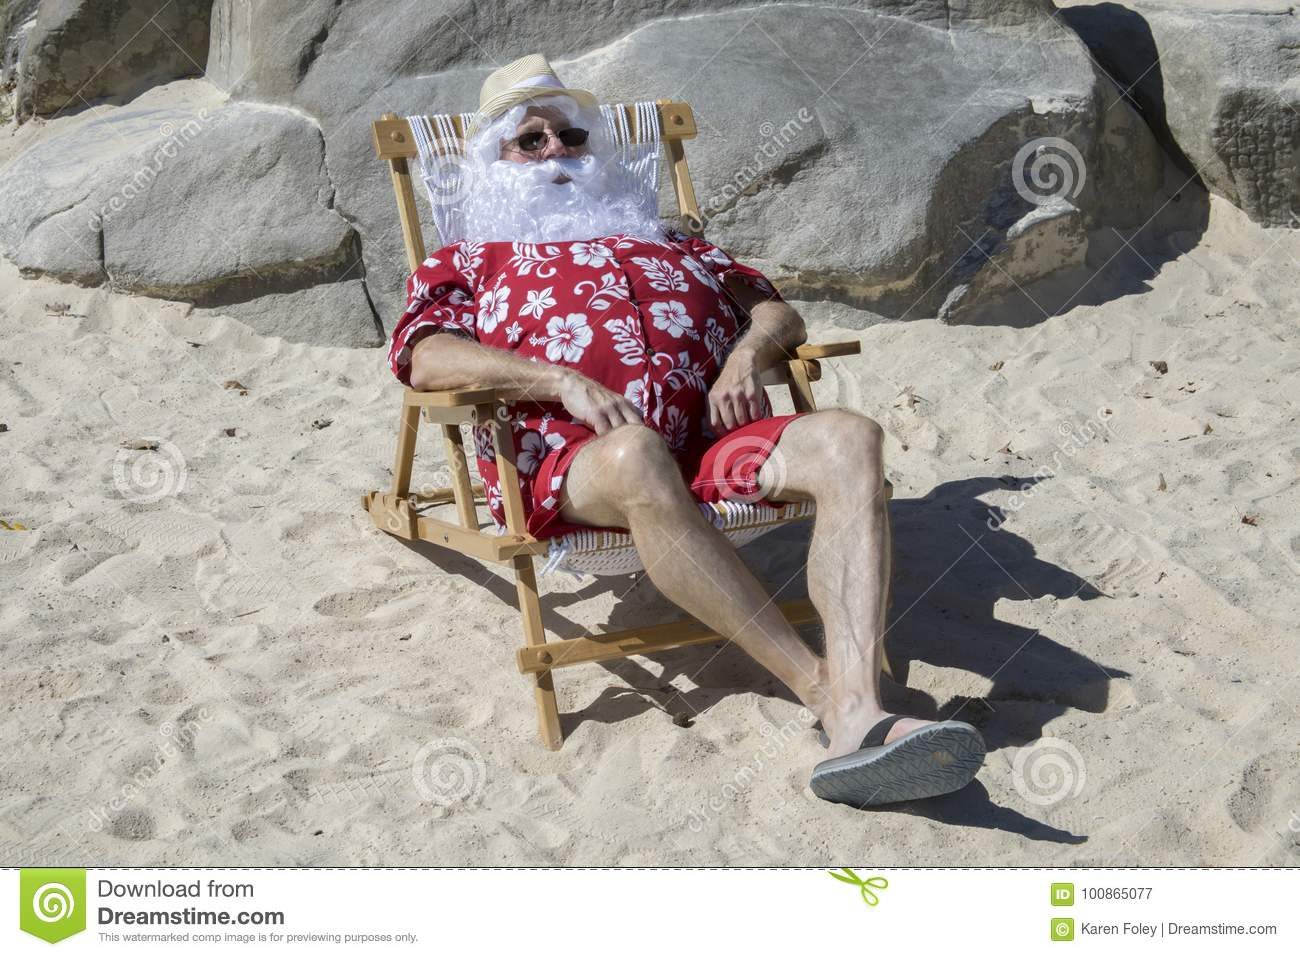 56c916f4 Santa Claus in red swimming trunks ans Hawaiian shirt lounging on sandy  beach with straw hat and sunglasses.